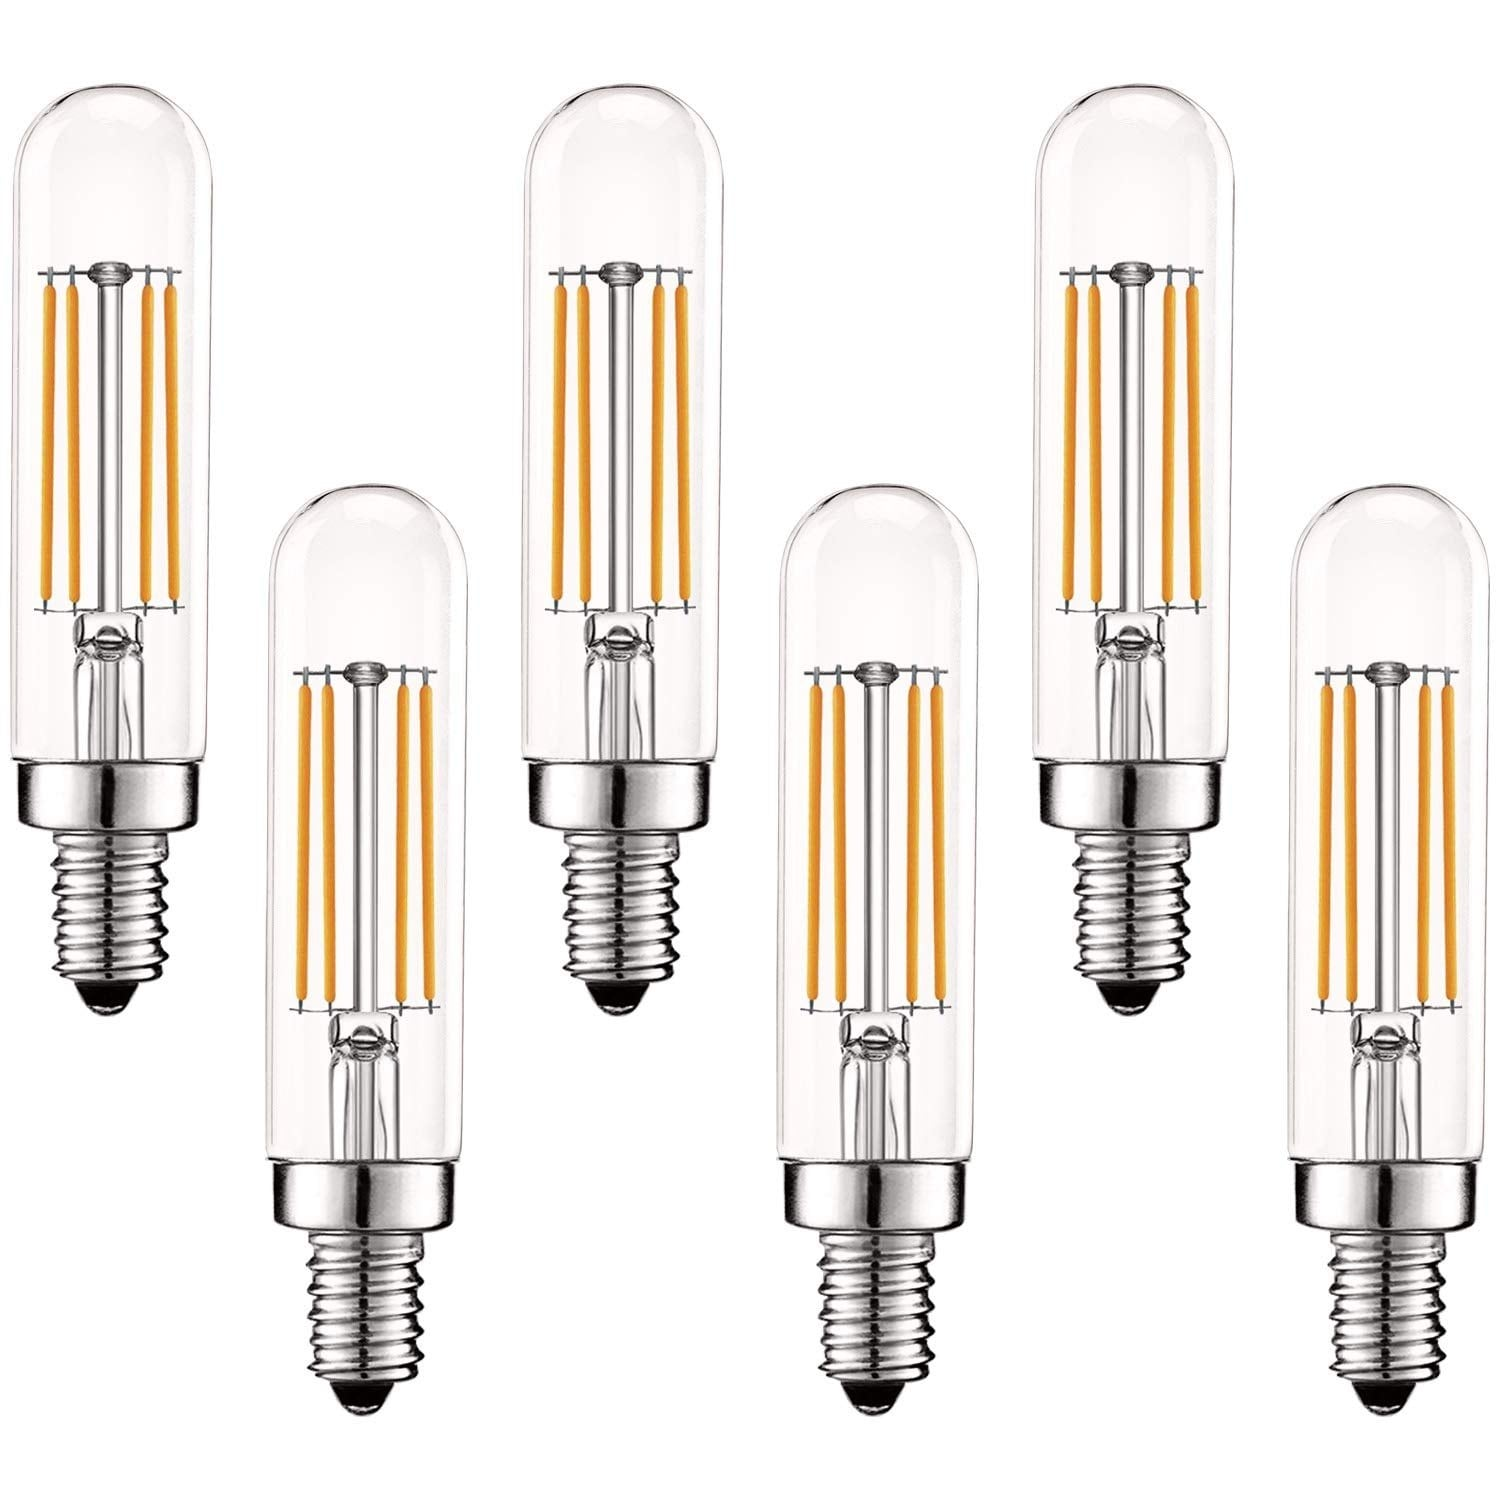 Luxrite Vintage E12 Led Bulb 60w Equivalent T6 T6 5 2700k Warm White 500 Lumens Dimmable Led Tube Bulbs 6 Pack Overstock 28958654